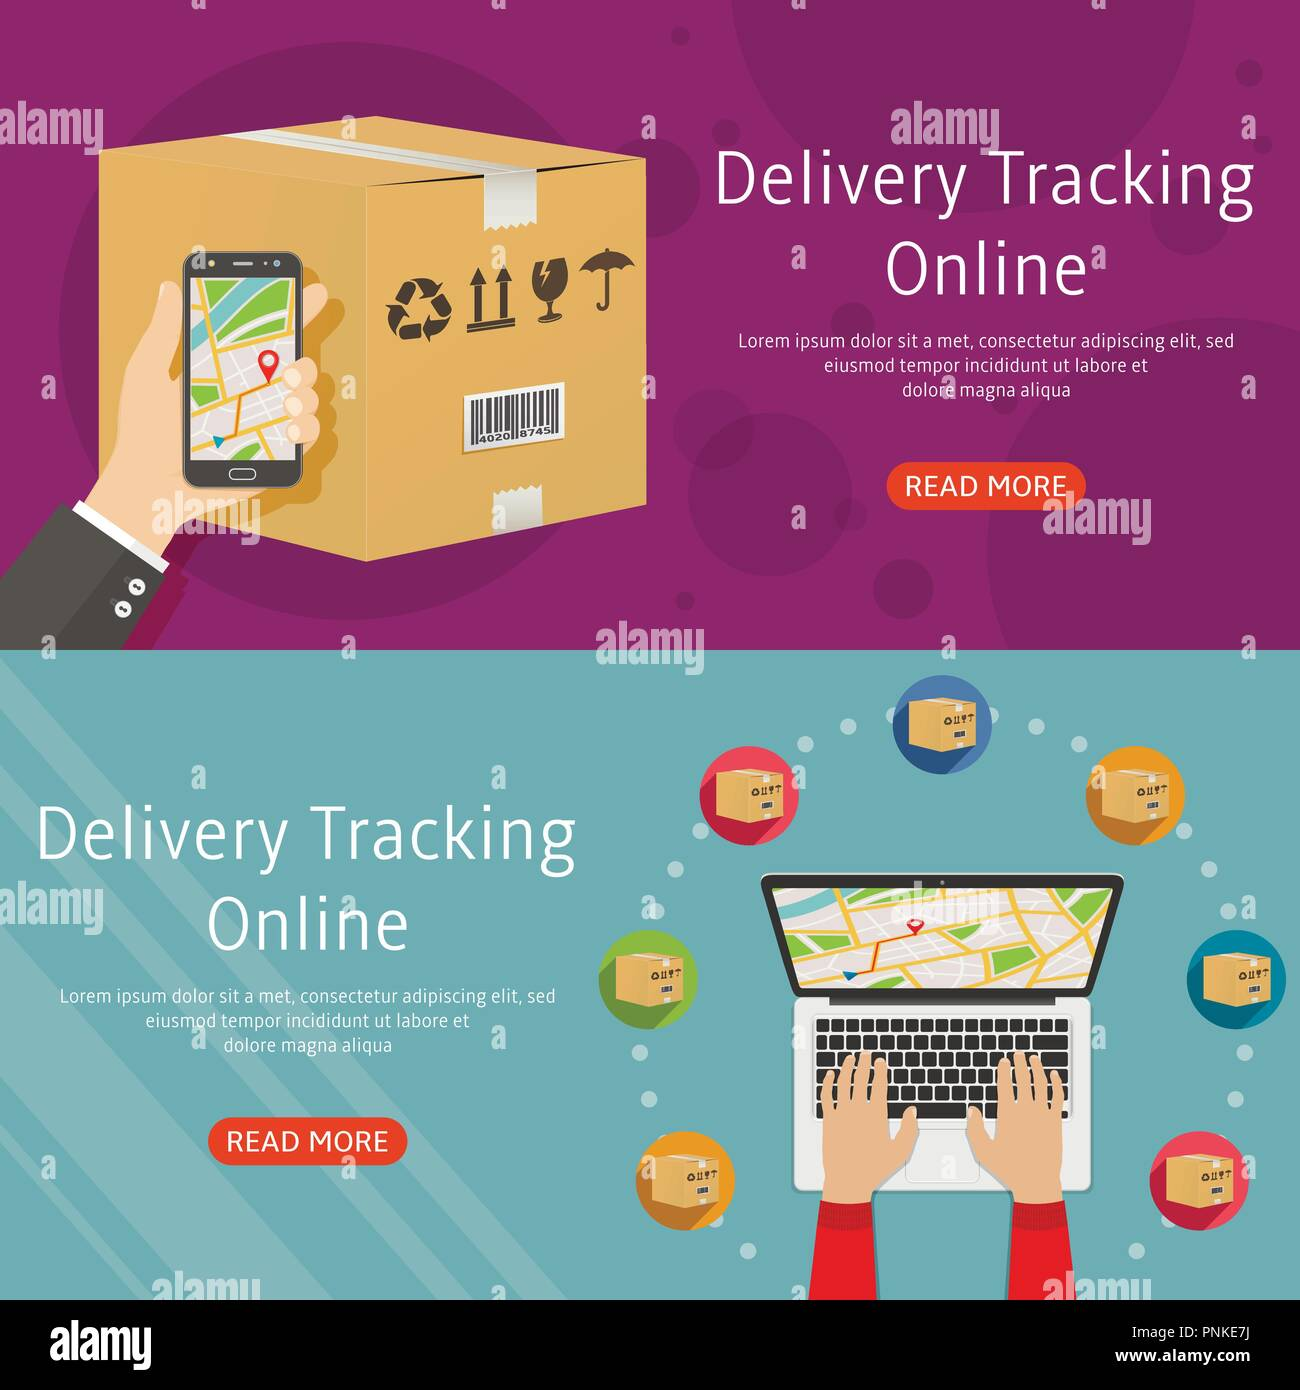 delivery online tracking two horizontal background web banners flat